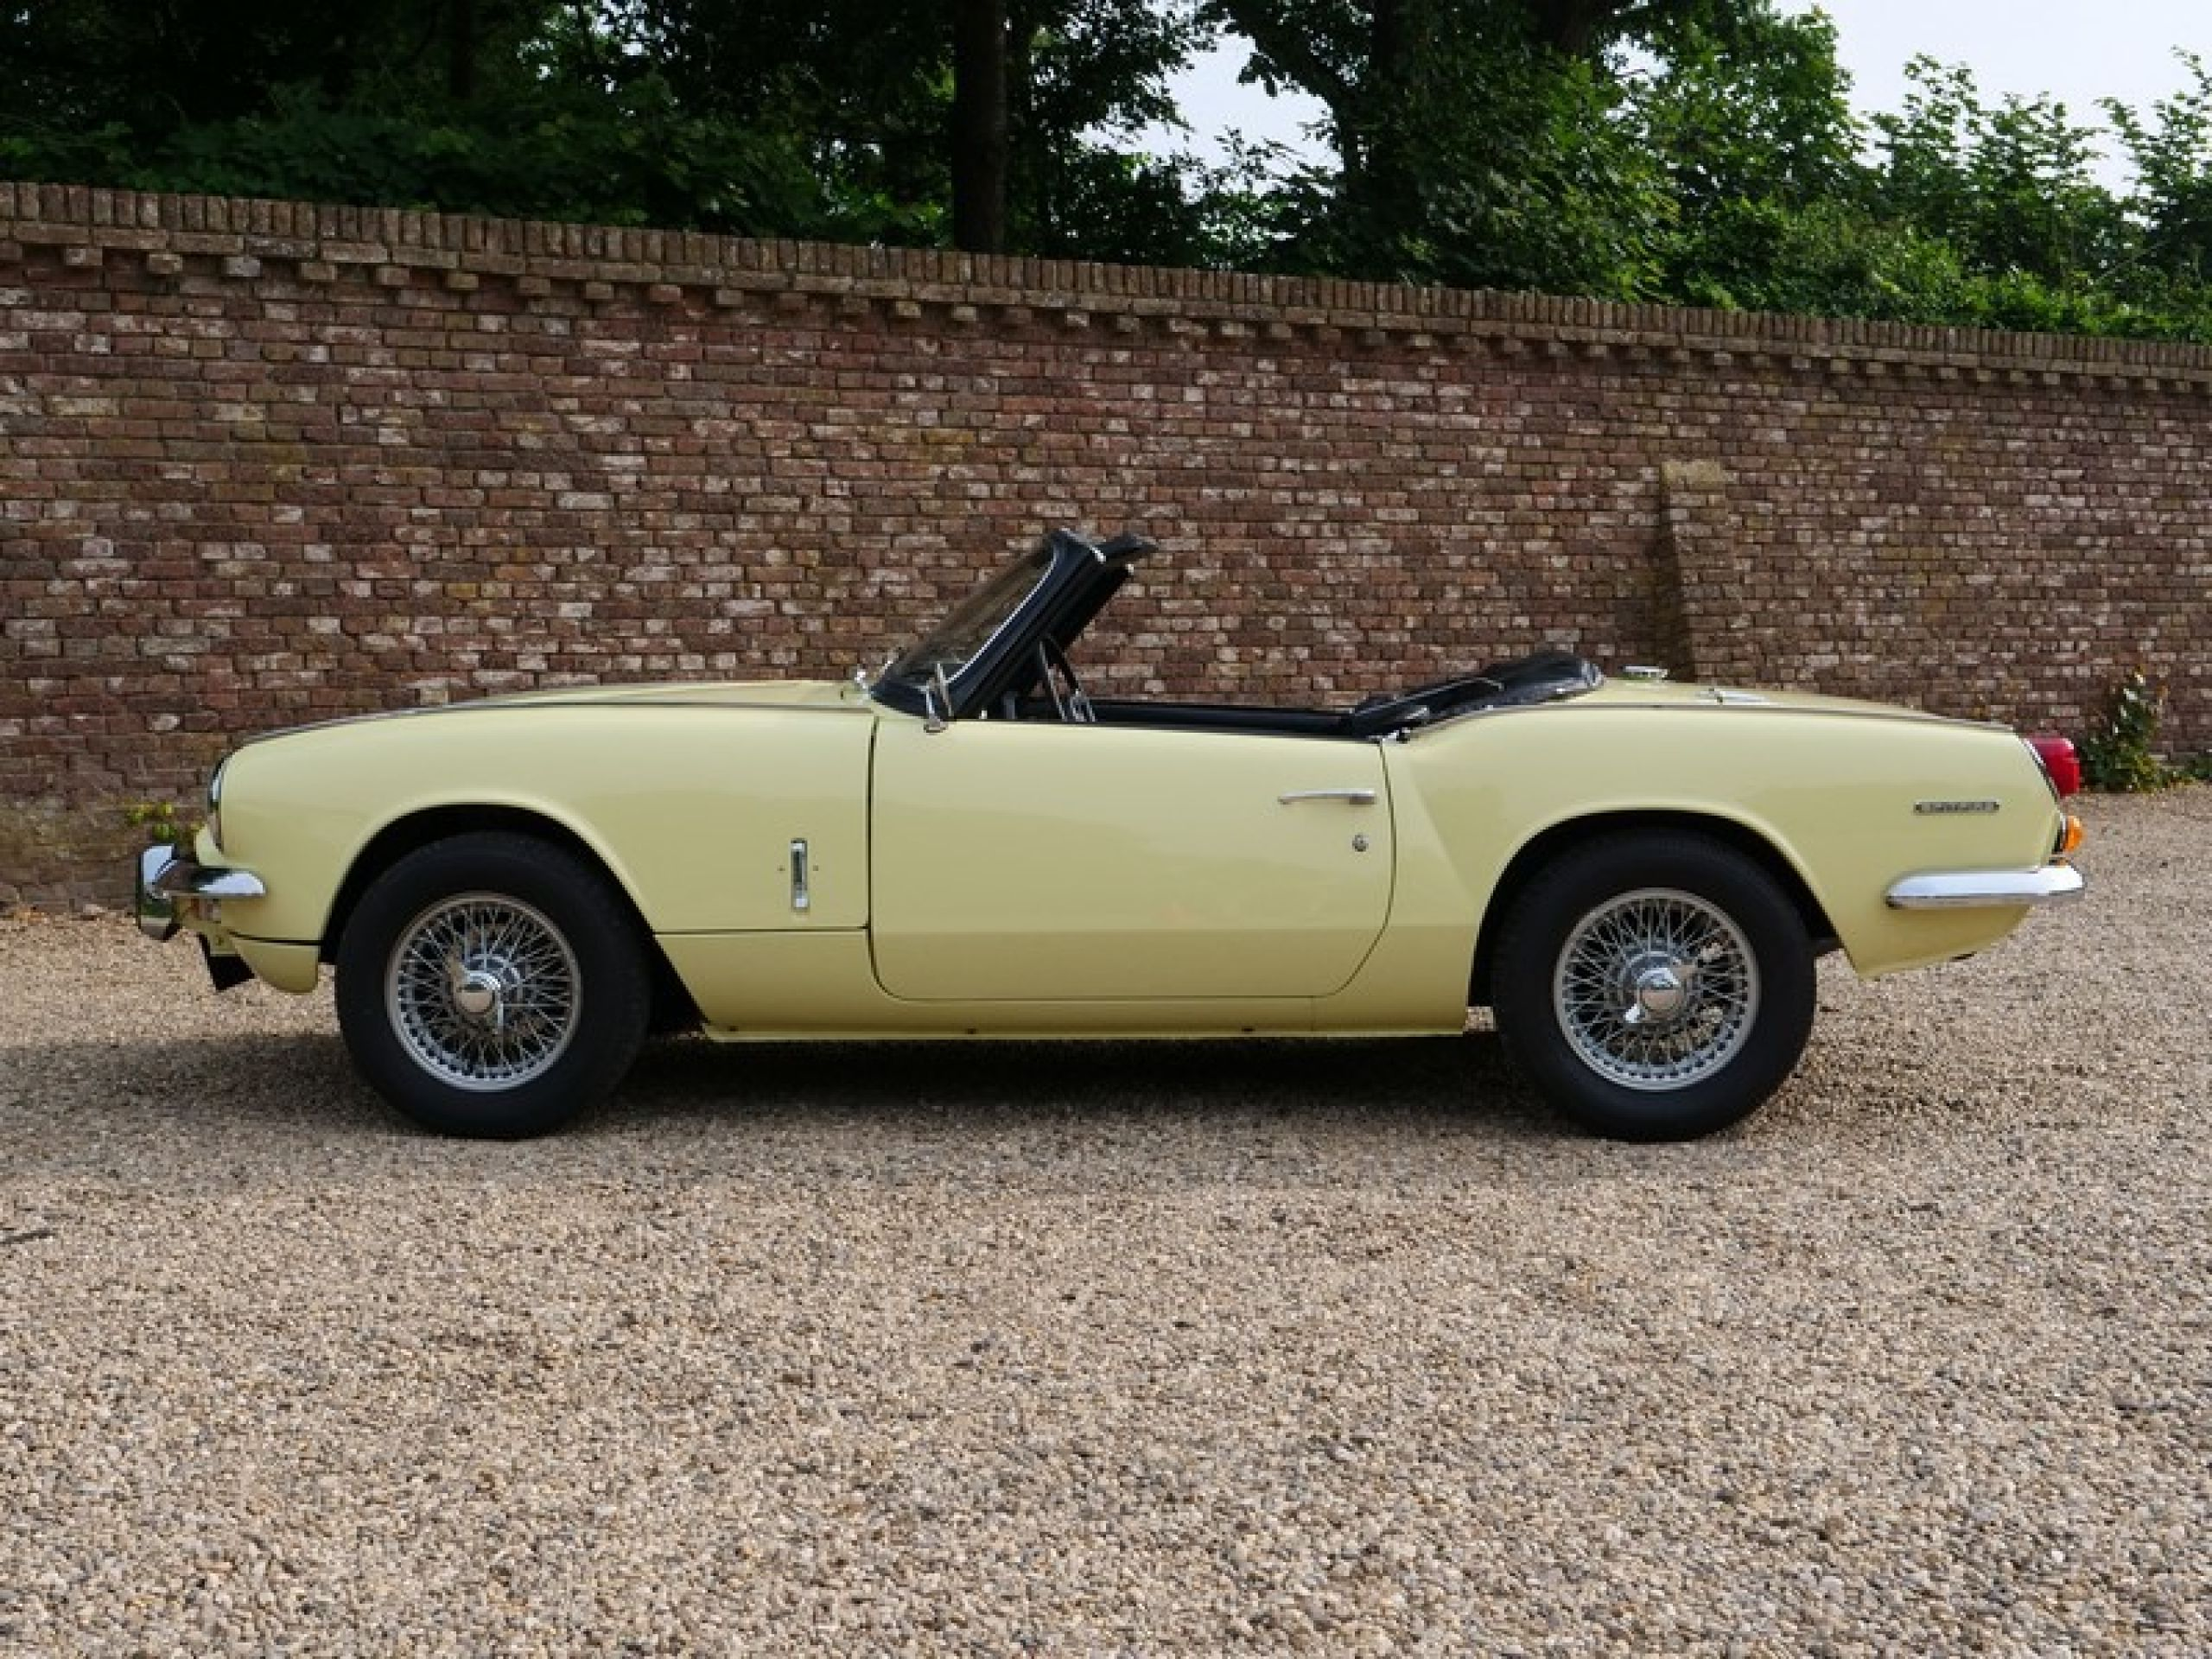 TRIUMPH SPITFIRE MK3 ORIGINAL CONDITION! 2ND OWNER CAR, ONLY 66.290 KMS (1970)